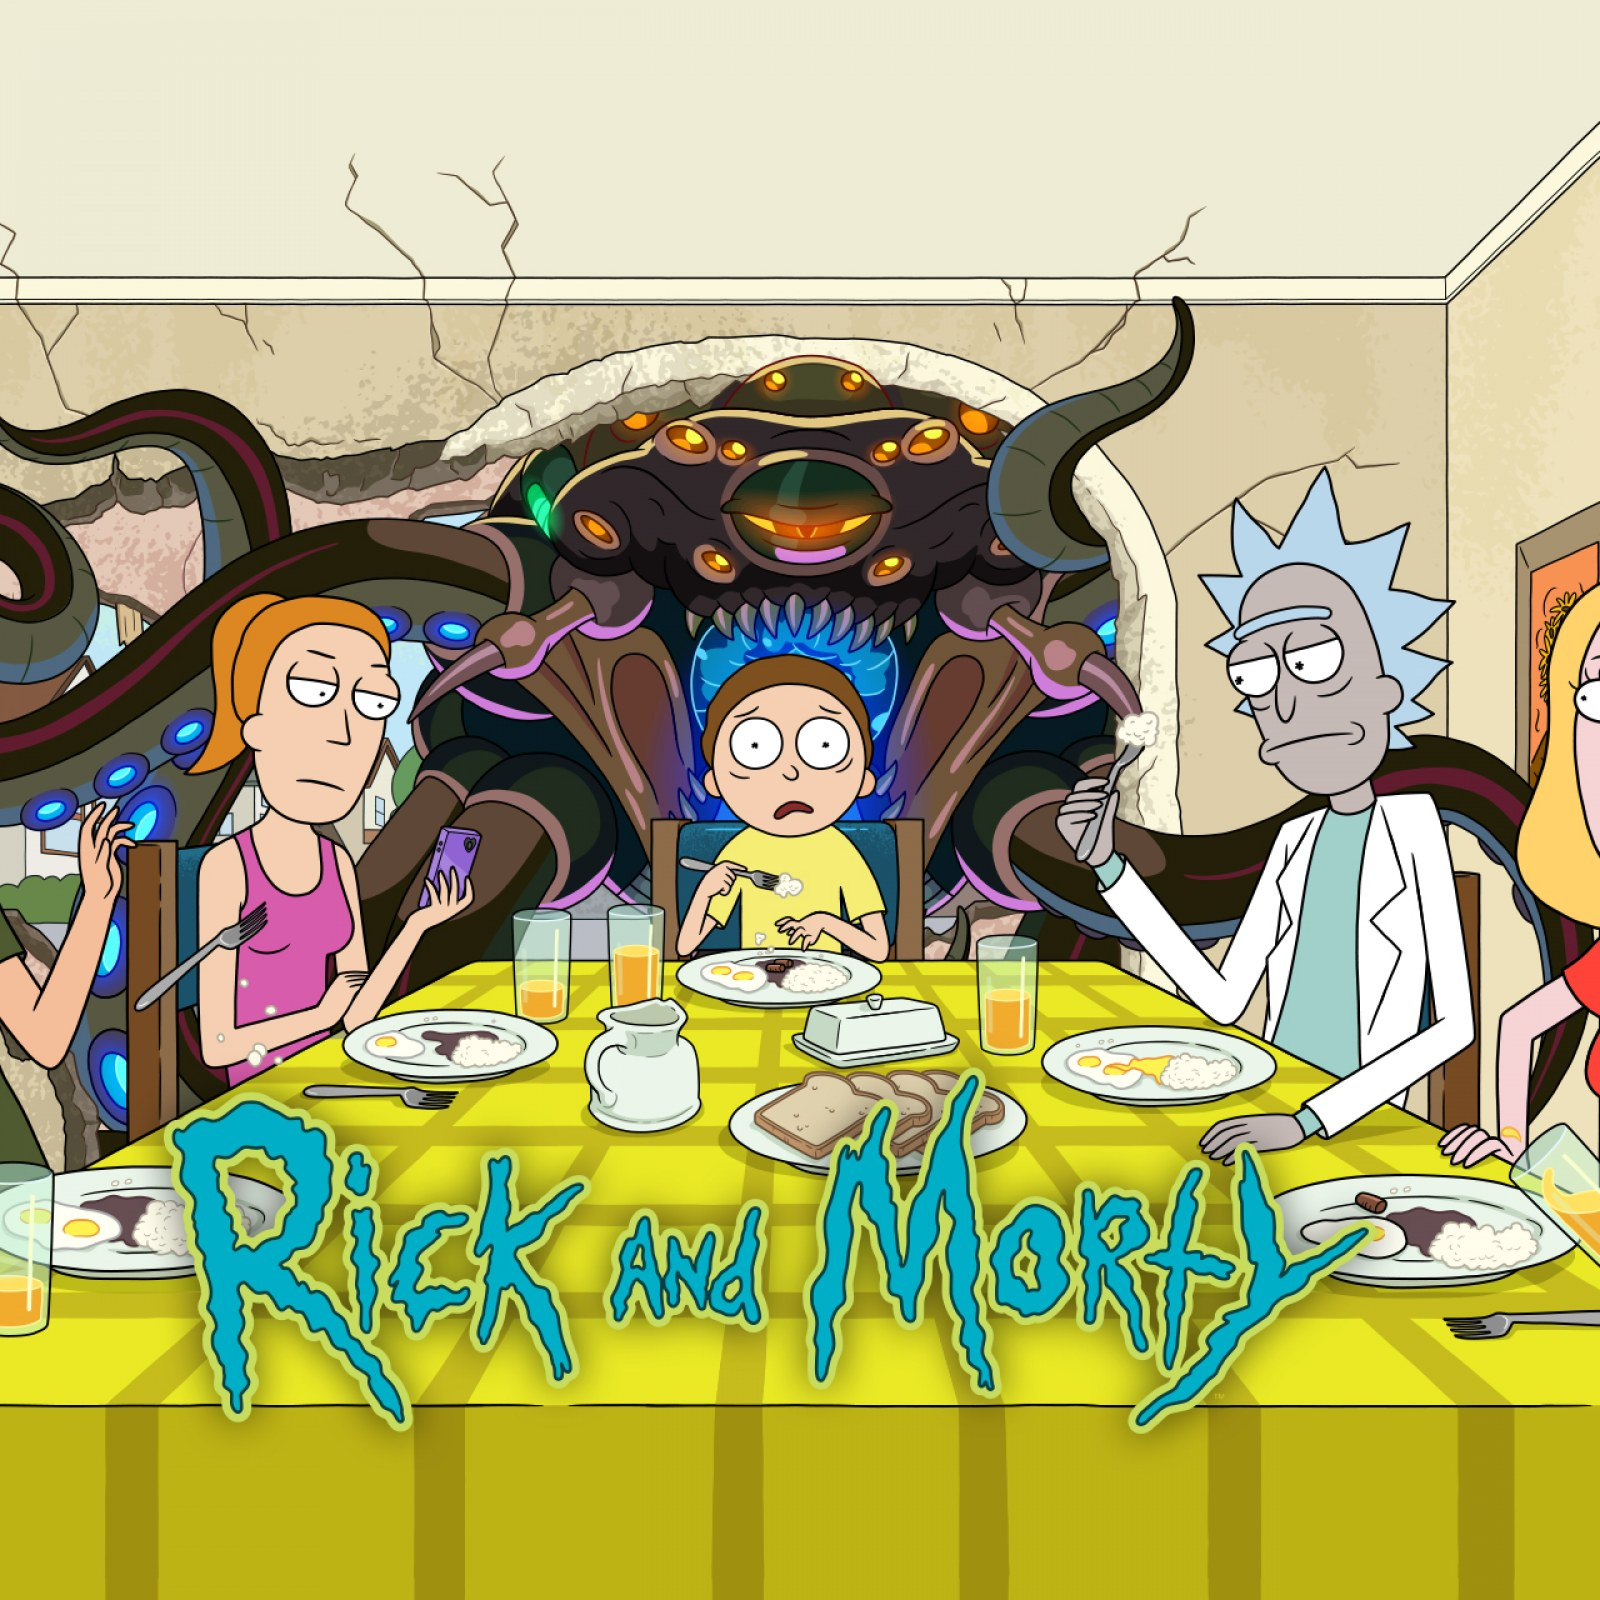 Rick And Morty Season 5 Episode 4 Preview Back To The Horse Hospital